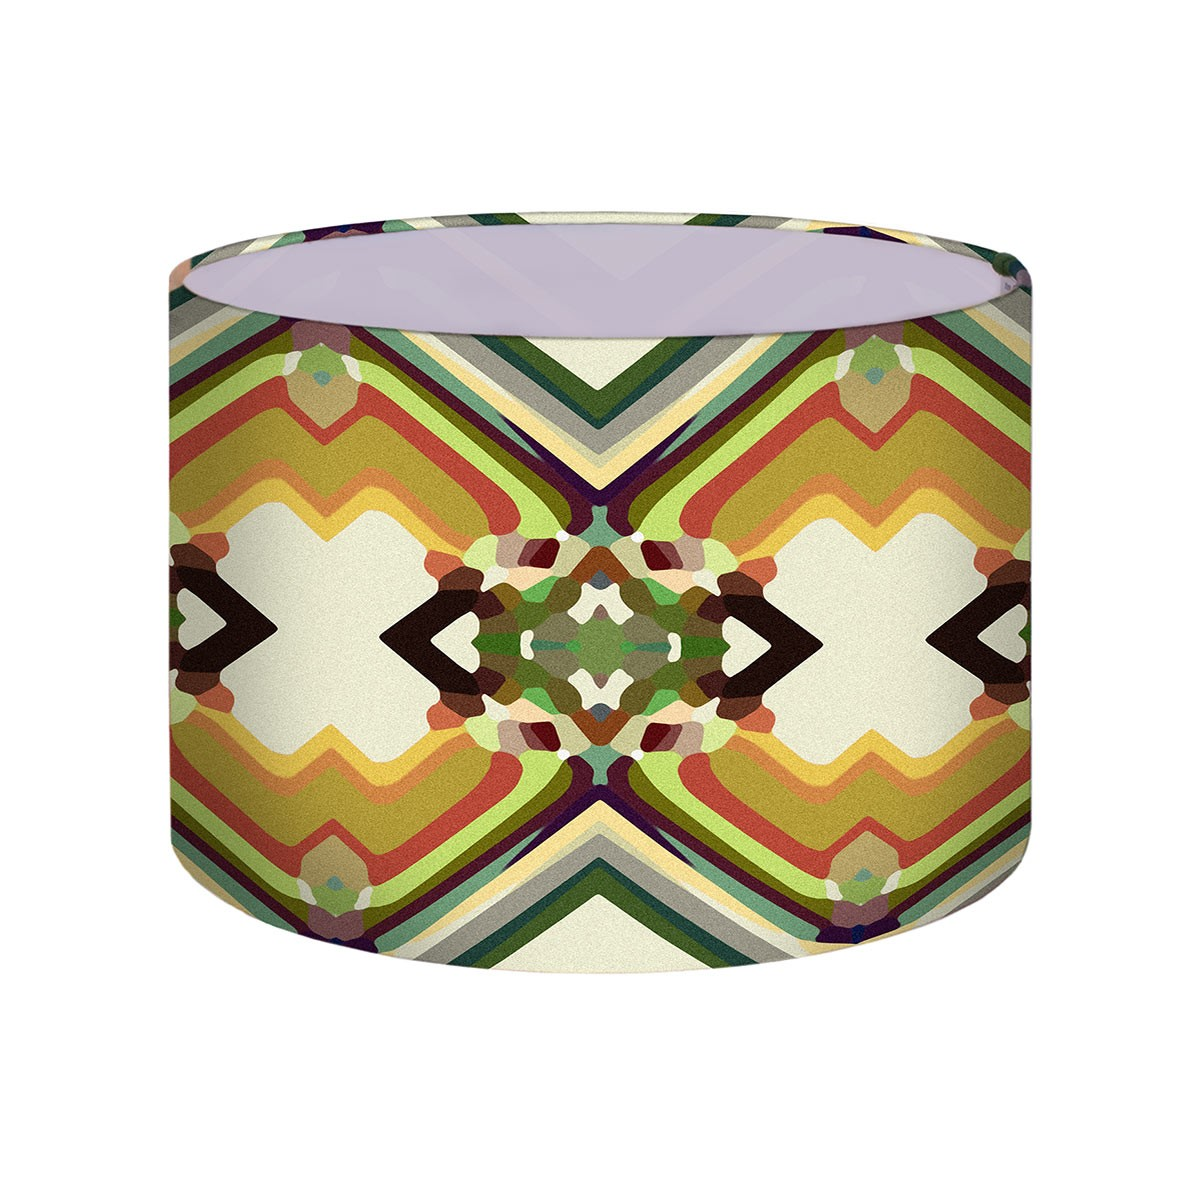 Marthe lampshade small - variation